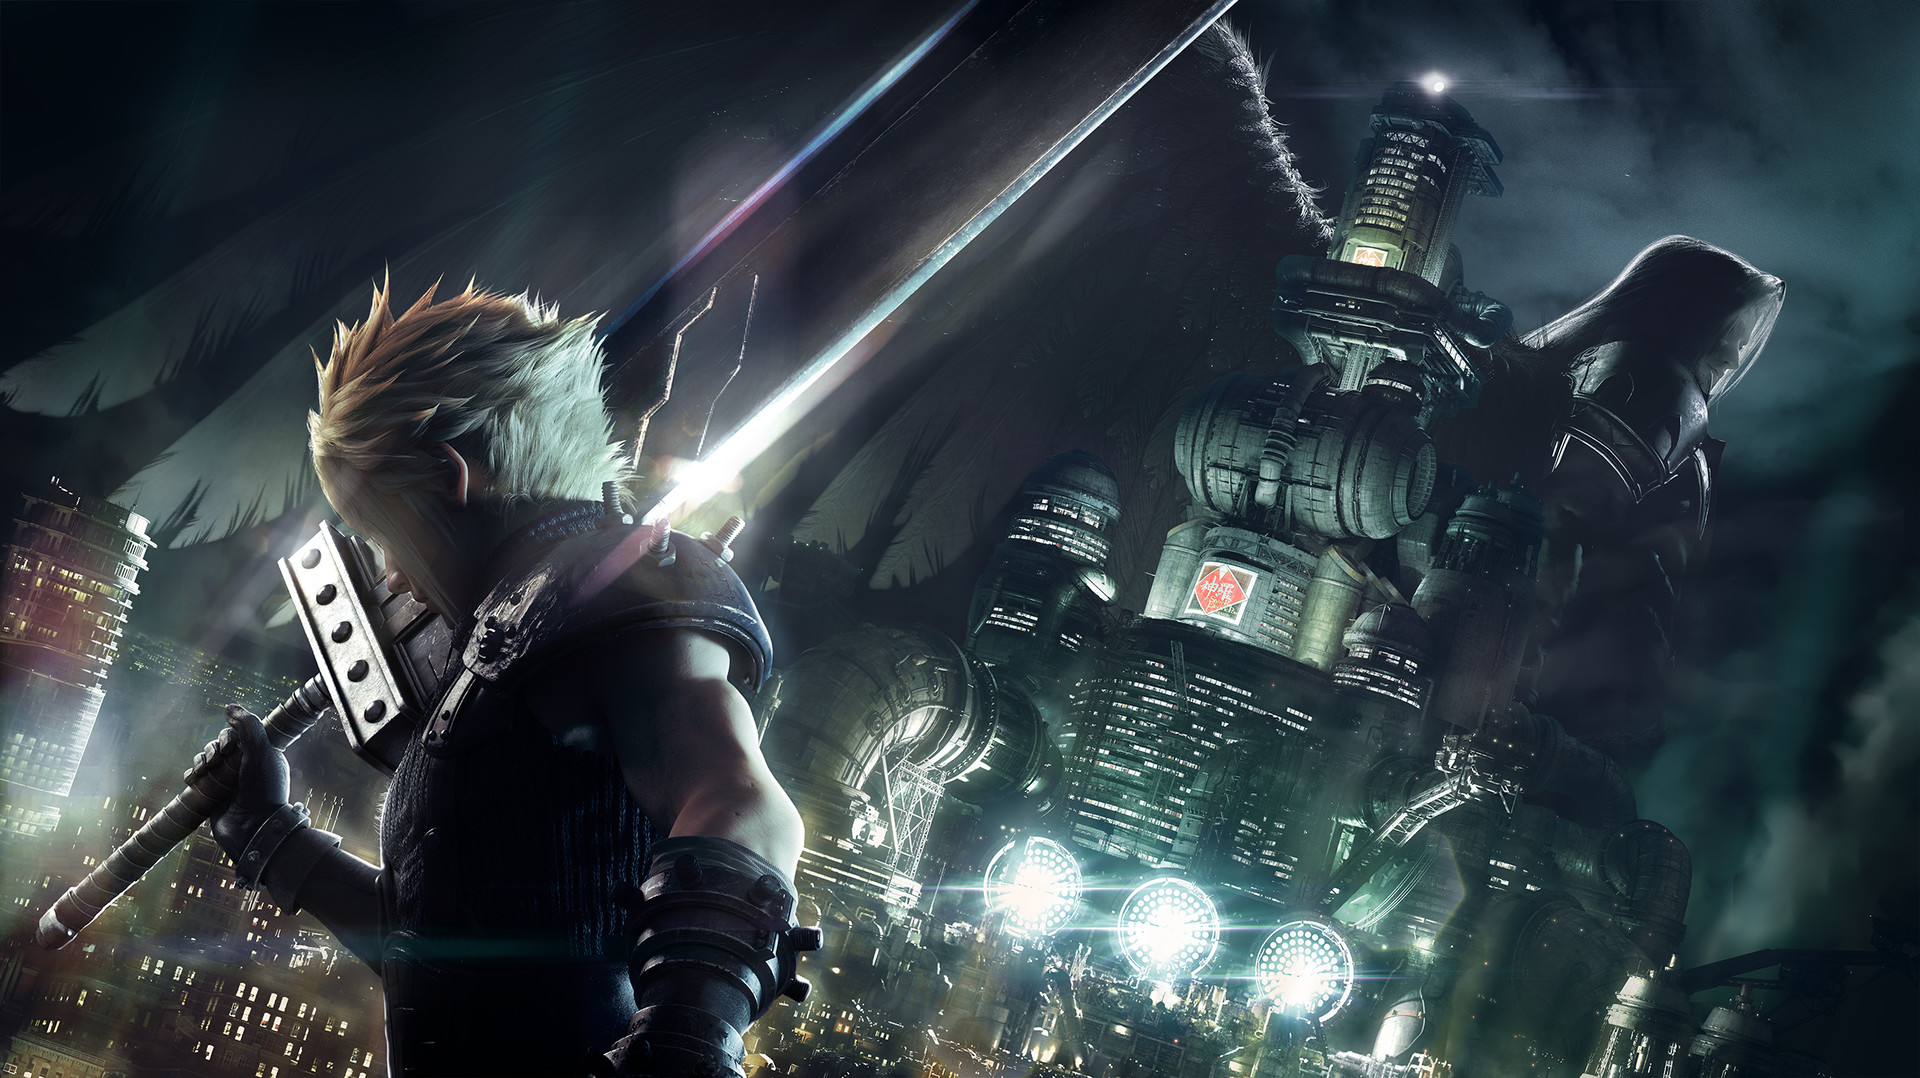 Final fantasy VII remake story